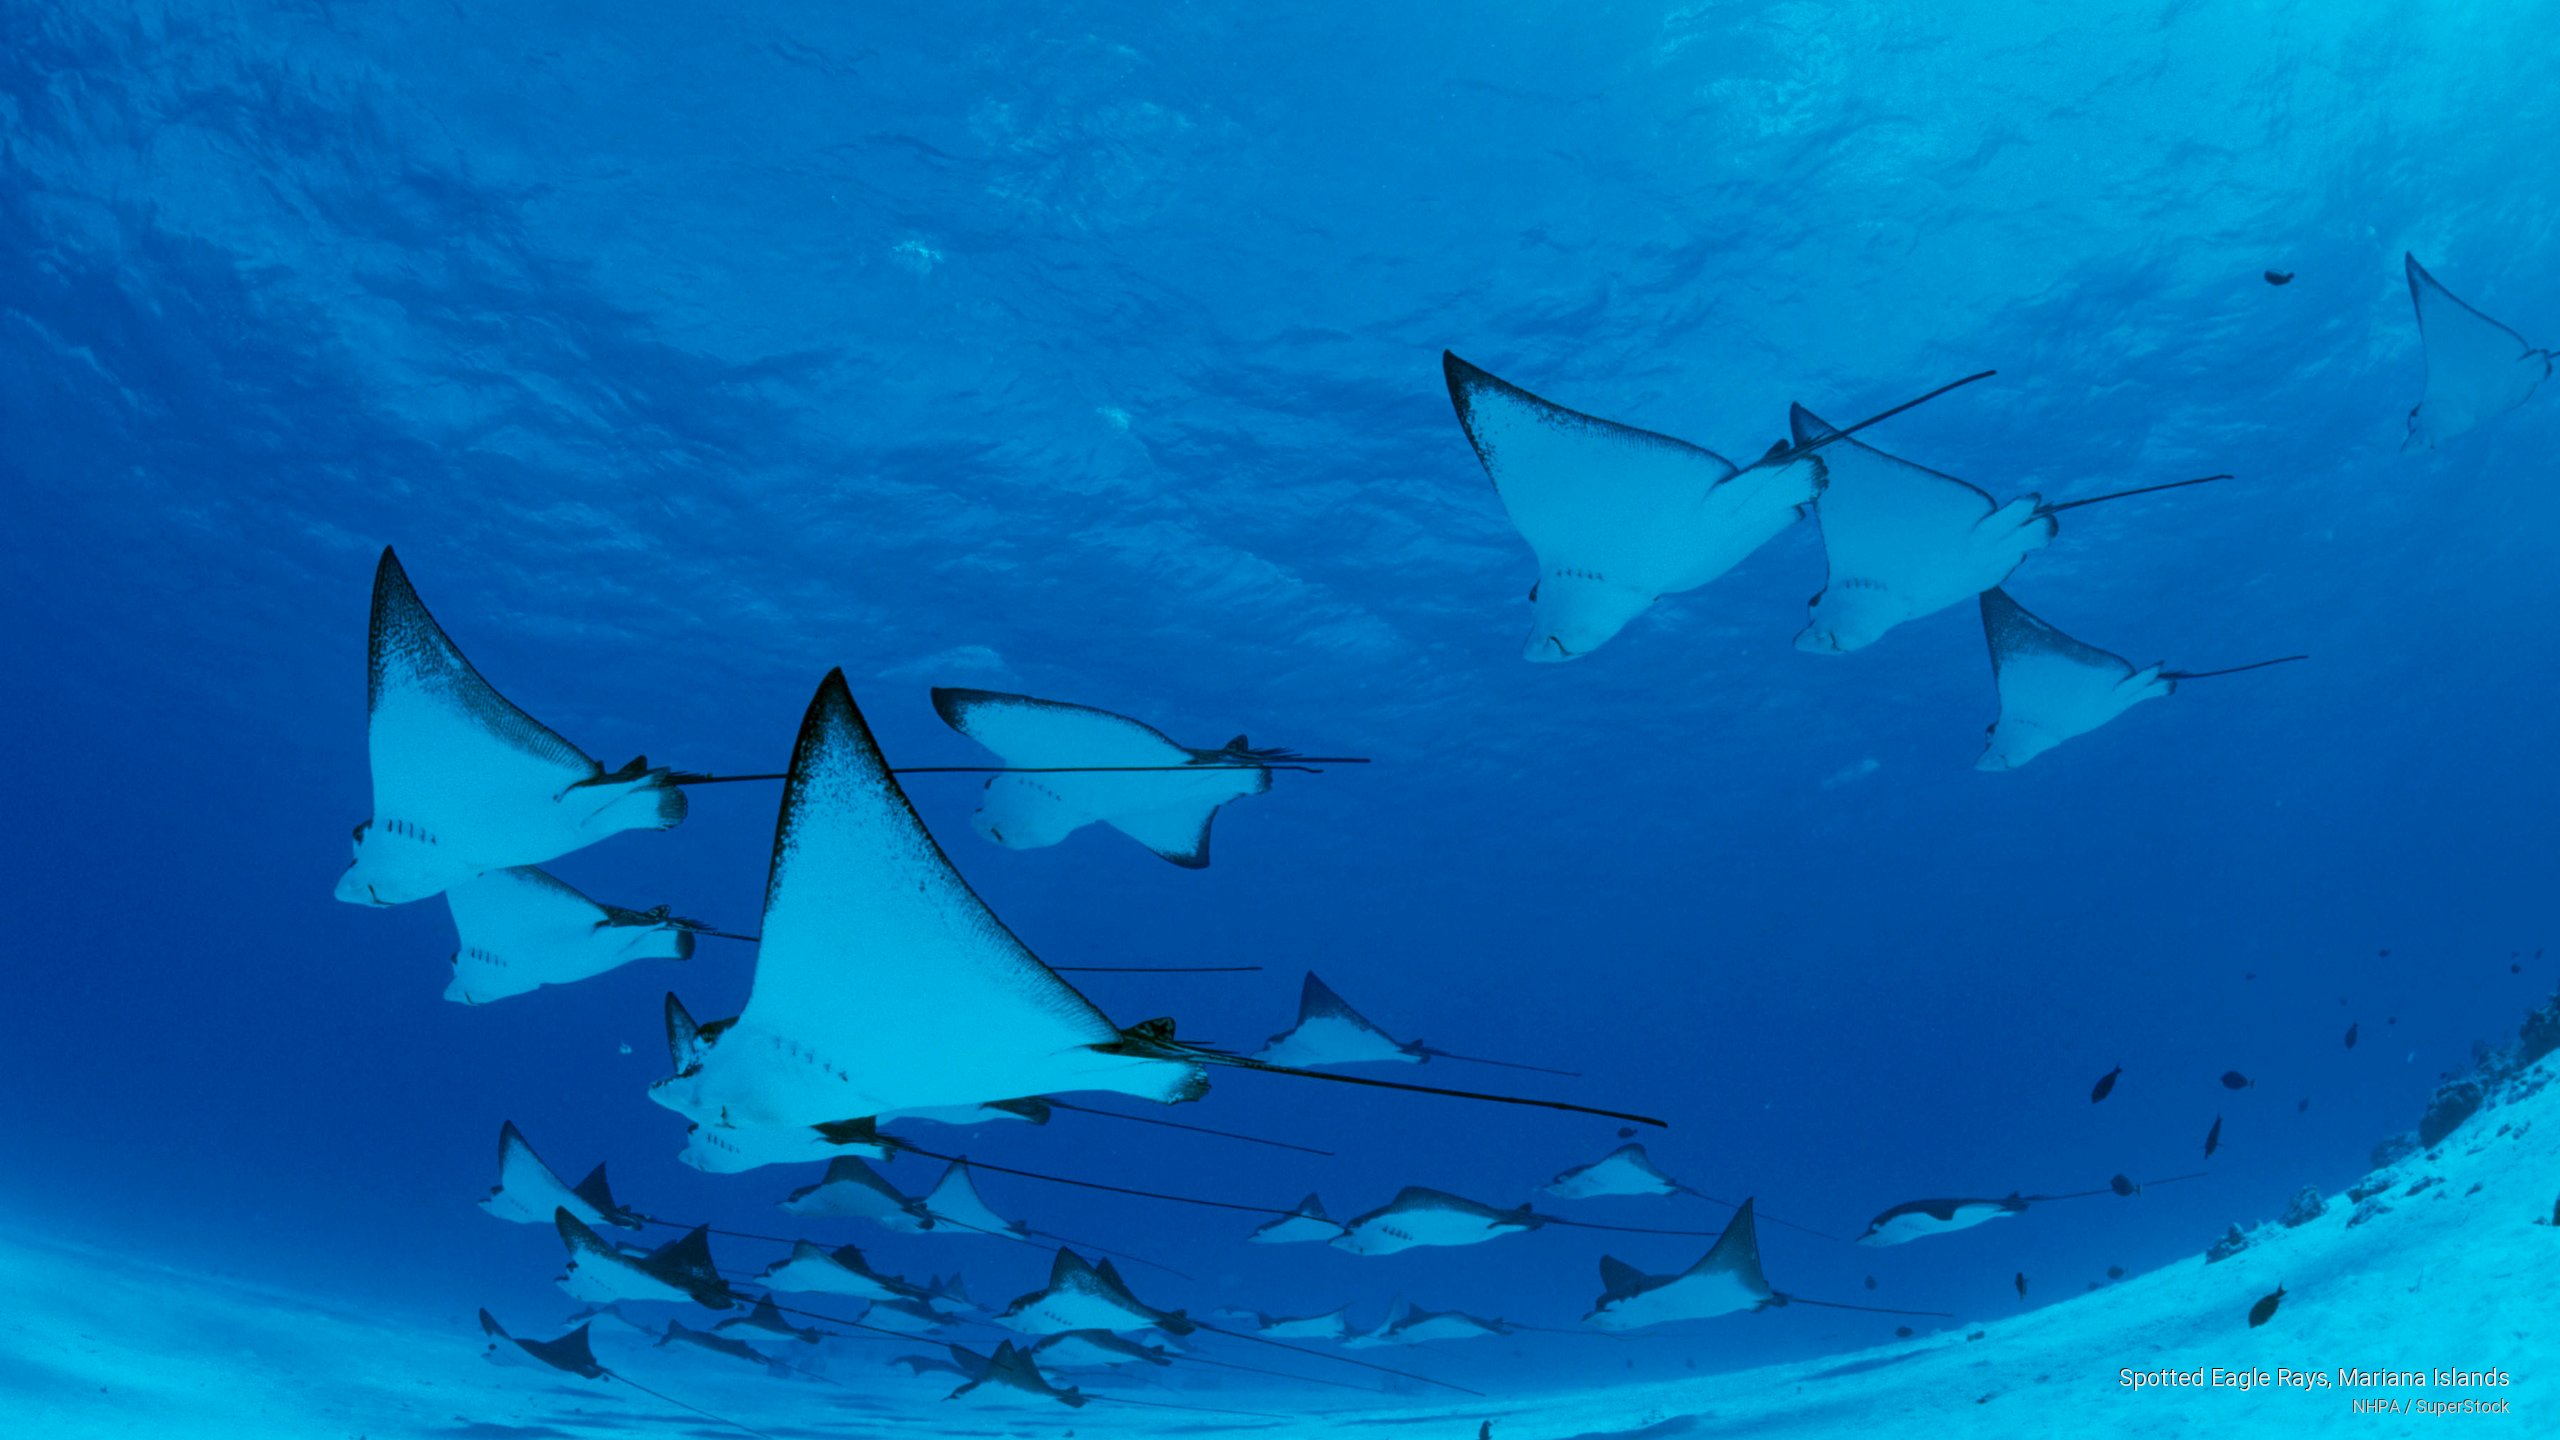 Spotted Eagle Rays, Mariana Islands